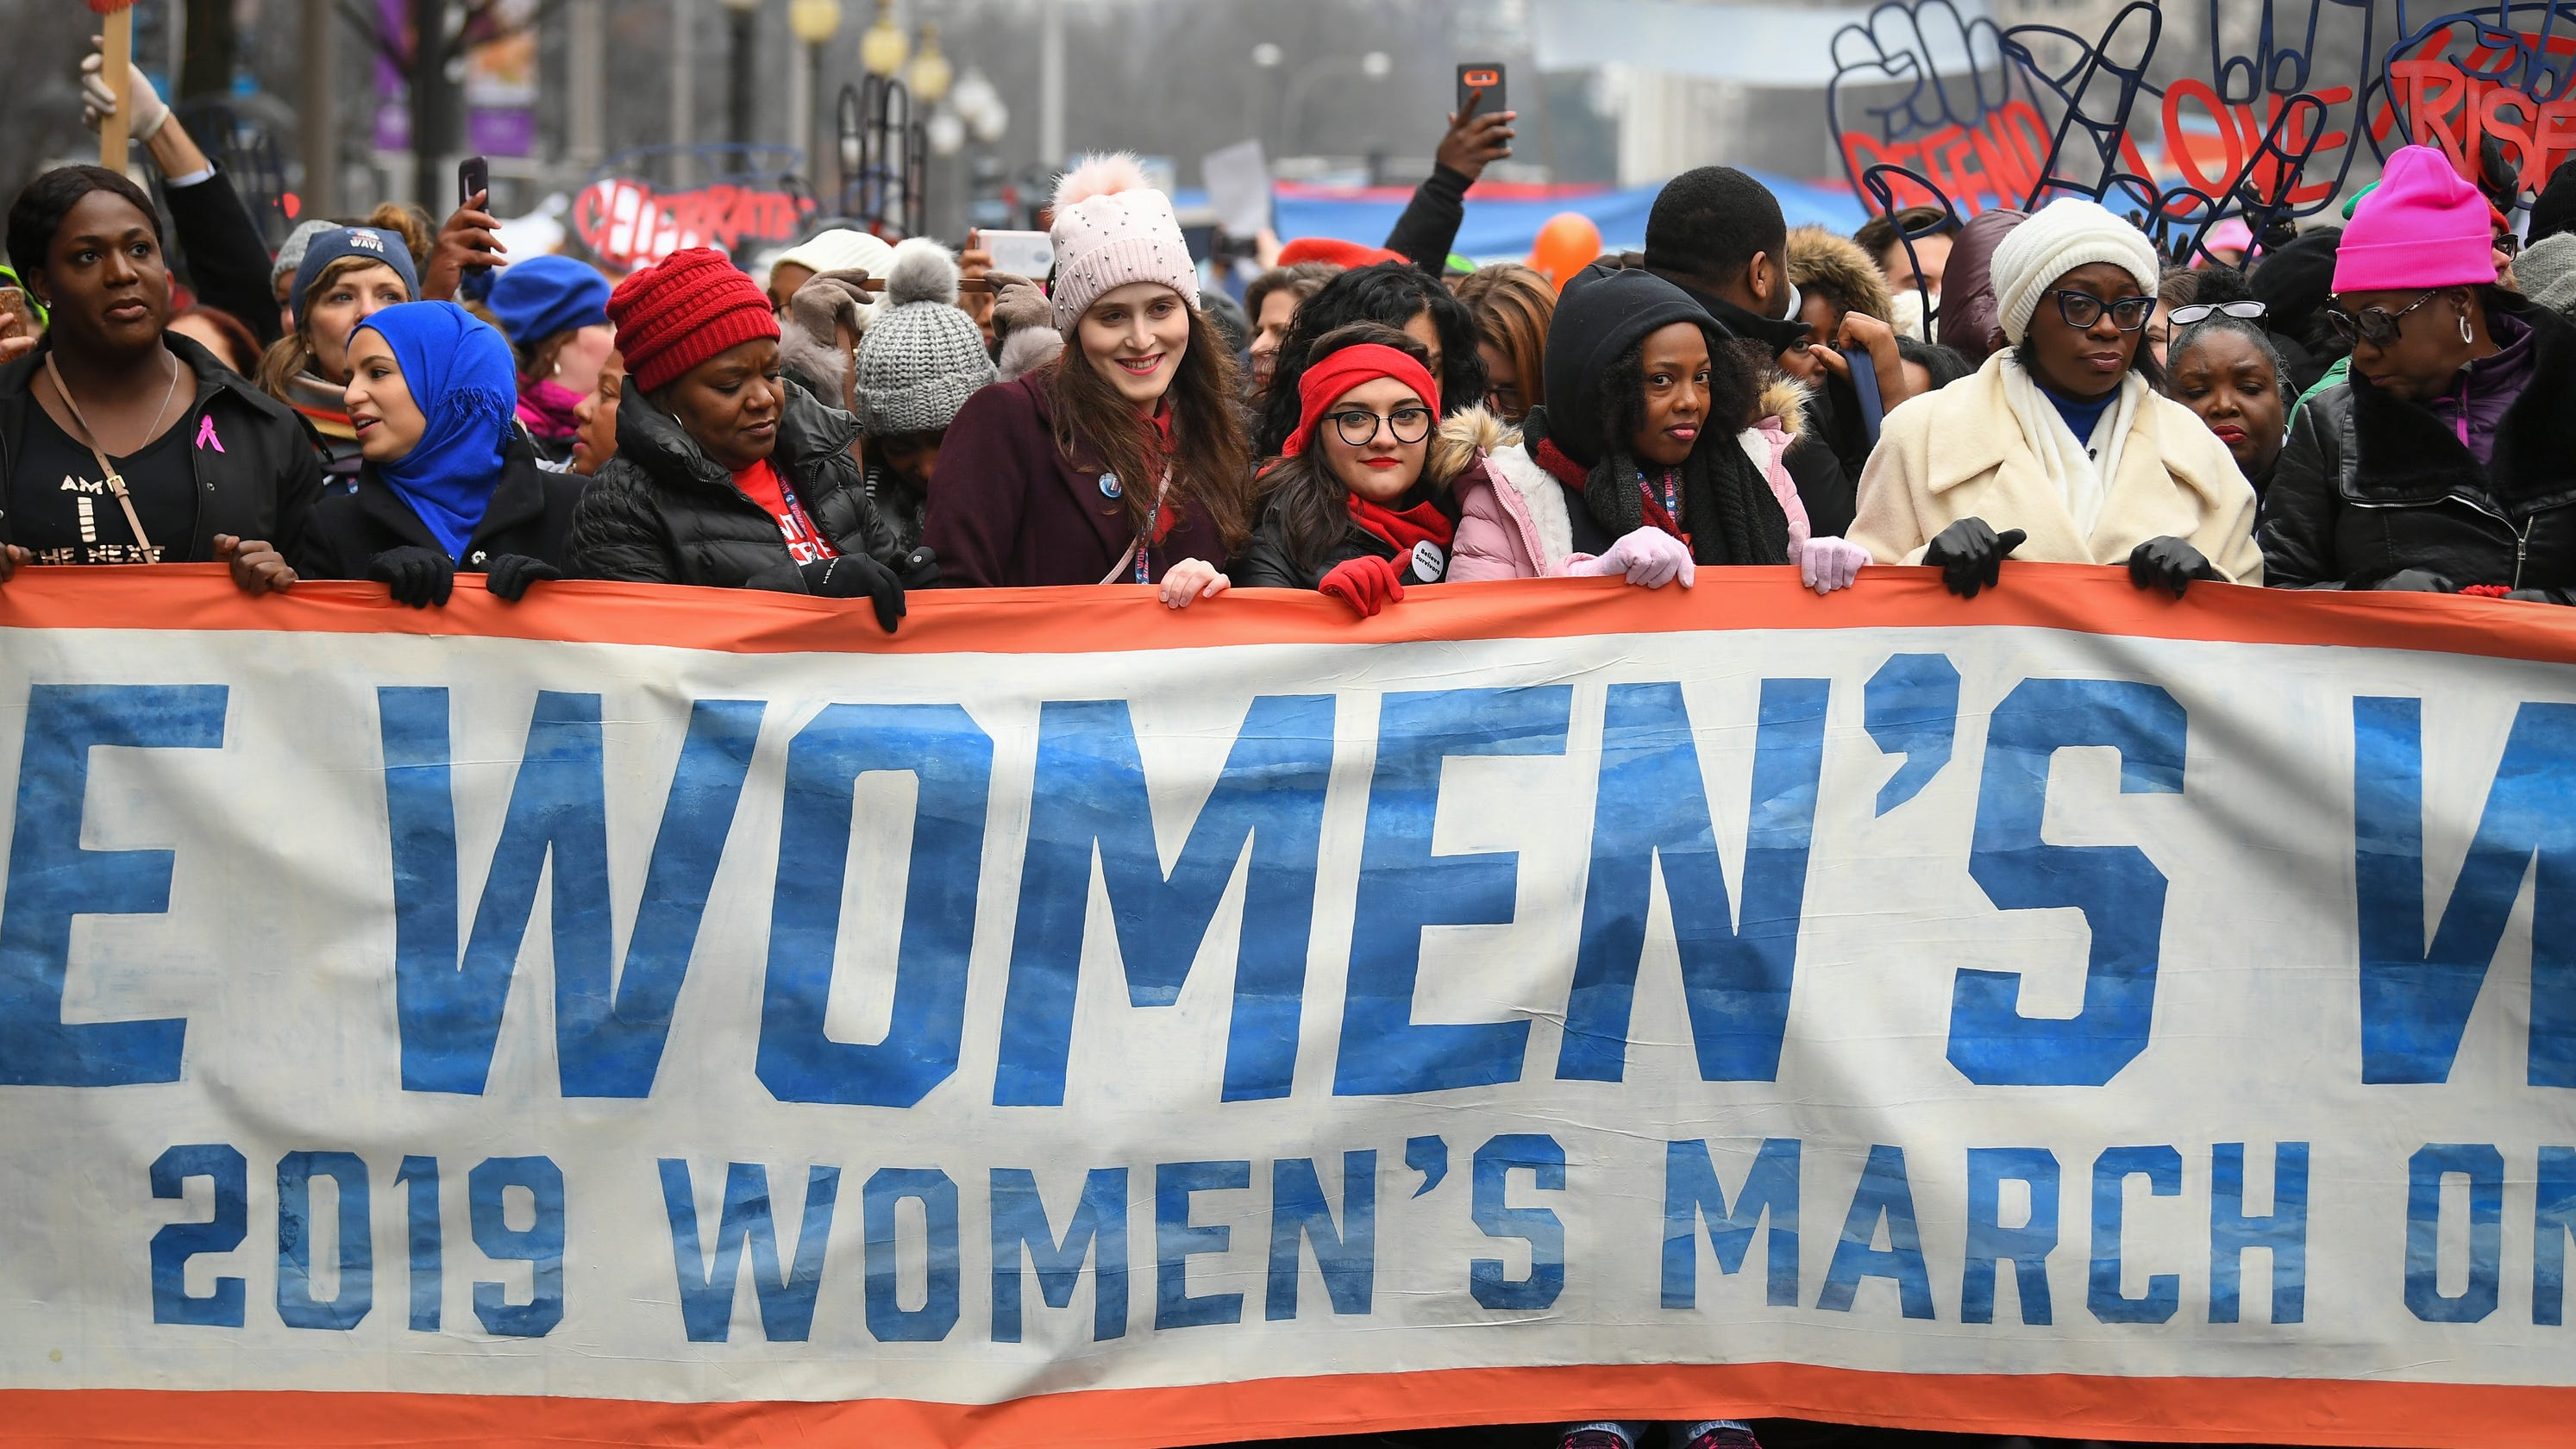 Women's March organizers hope to re-energize protests, draw thousands despite 'marcher fatigue'